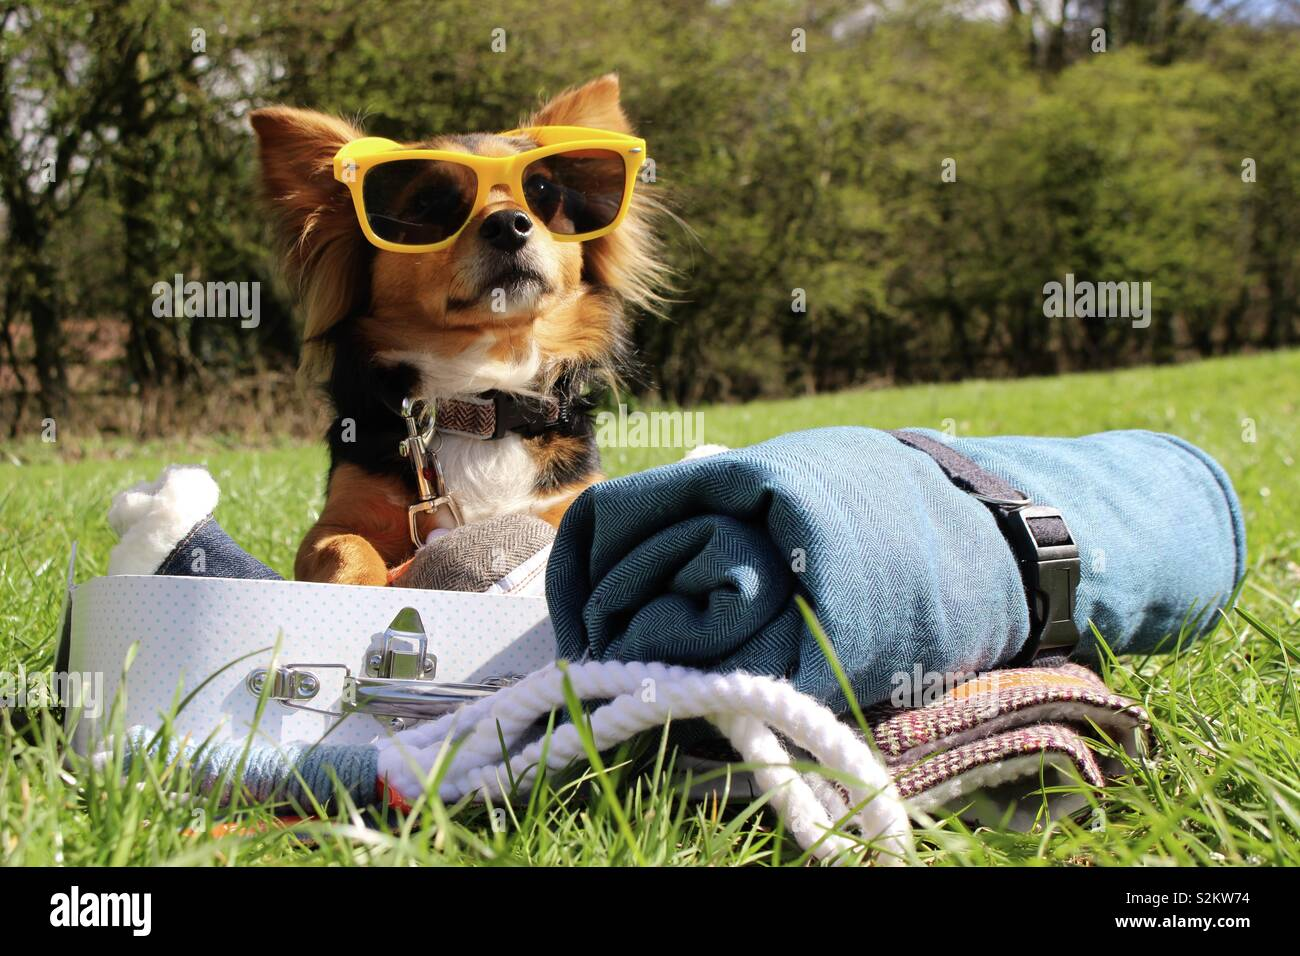 Summer dog with sunglasses and suitcase Stock Photo